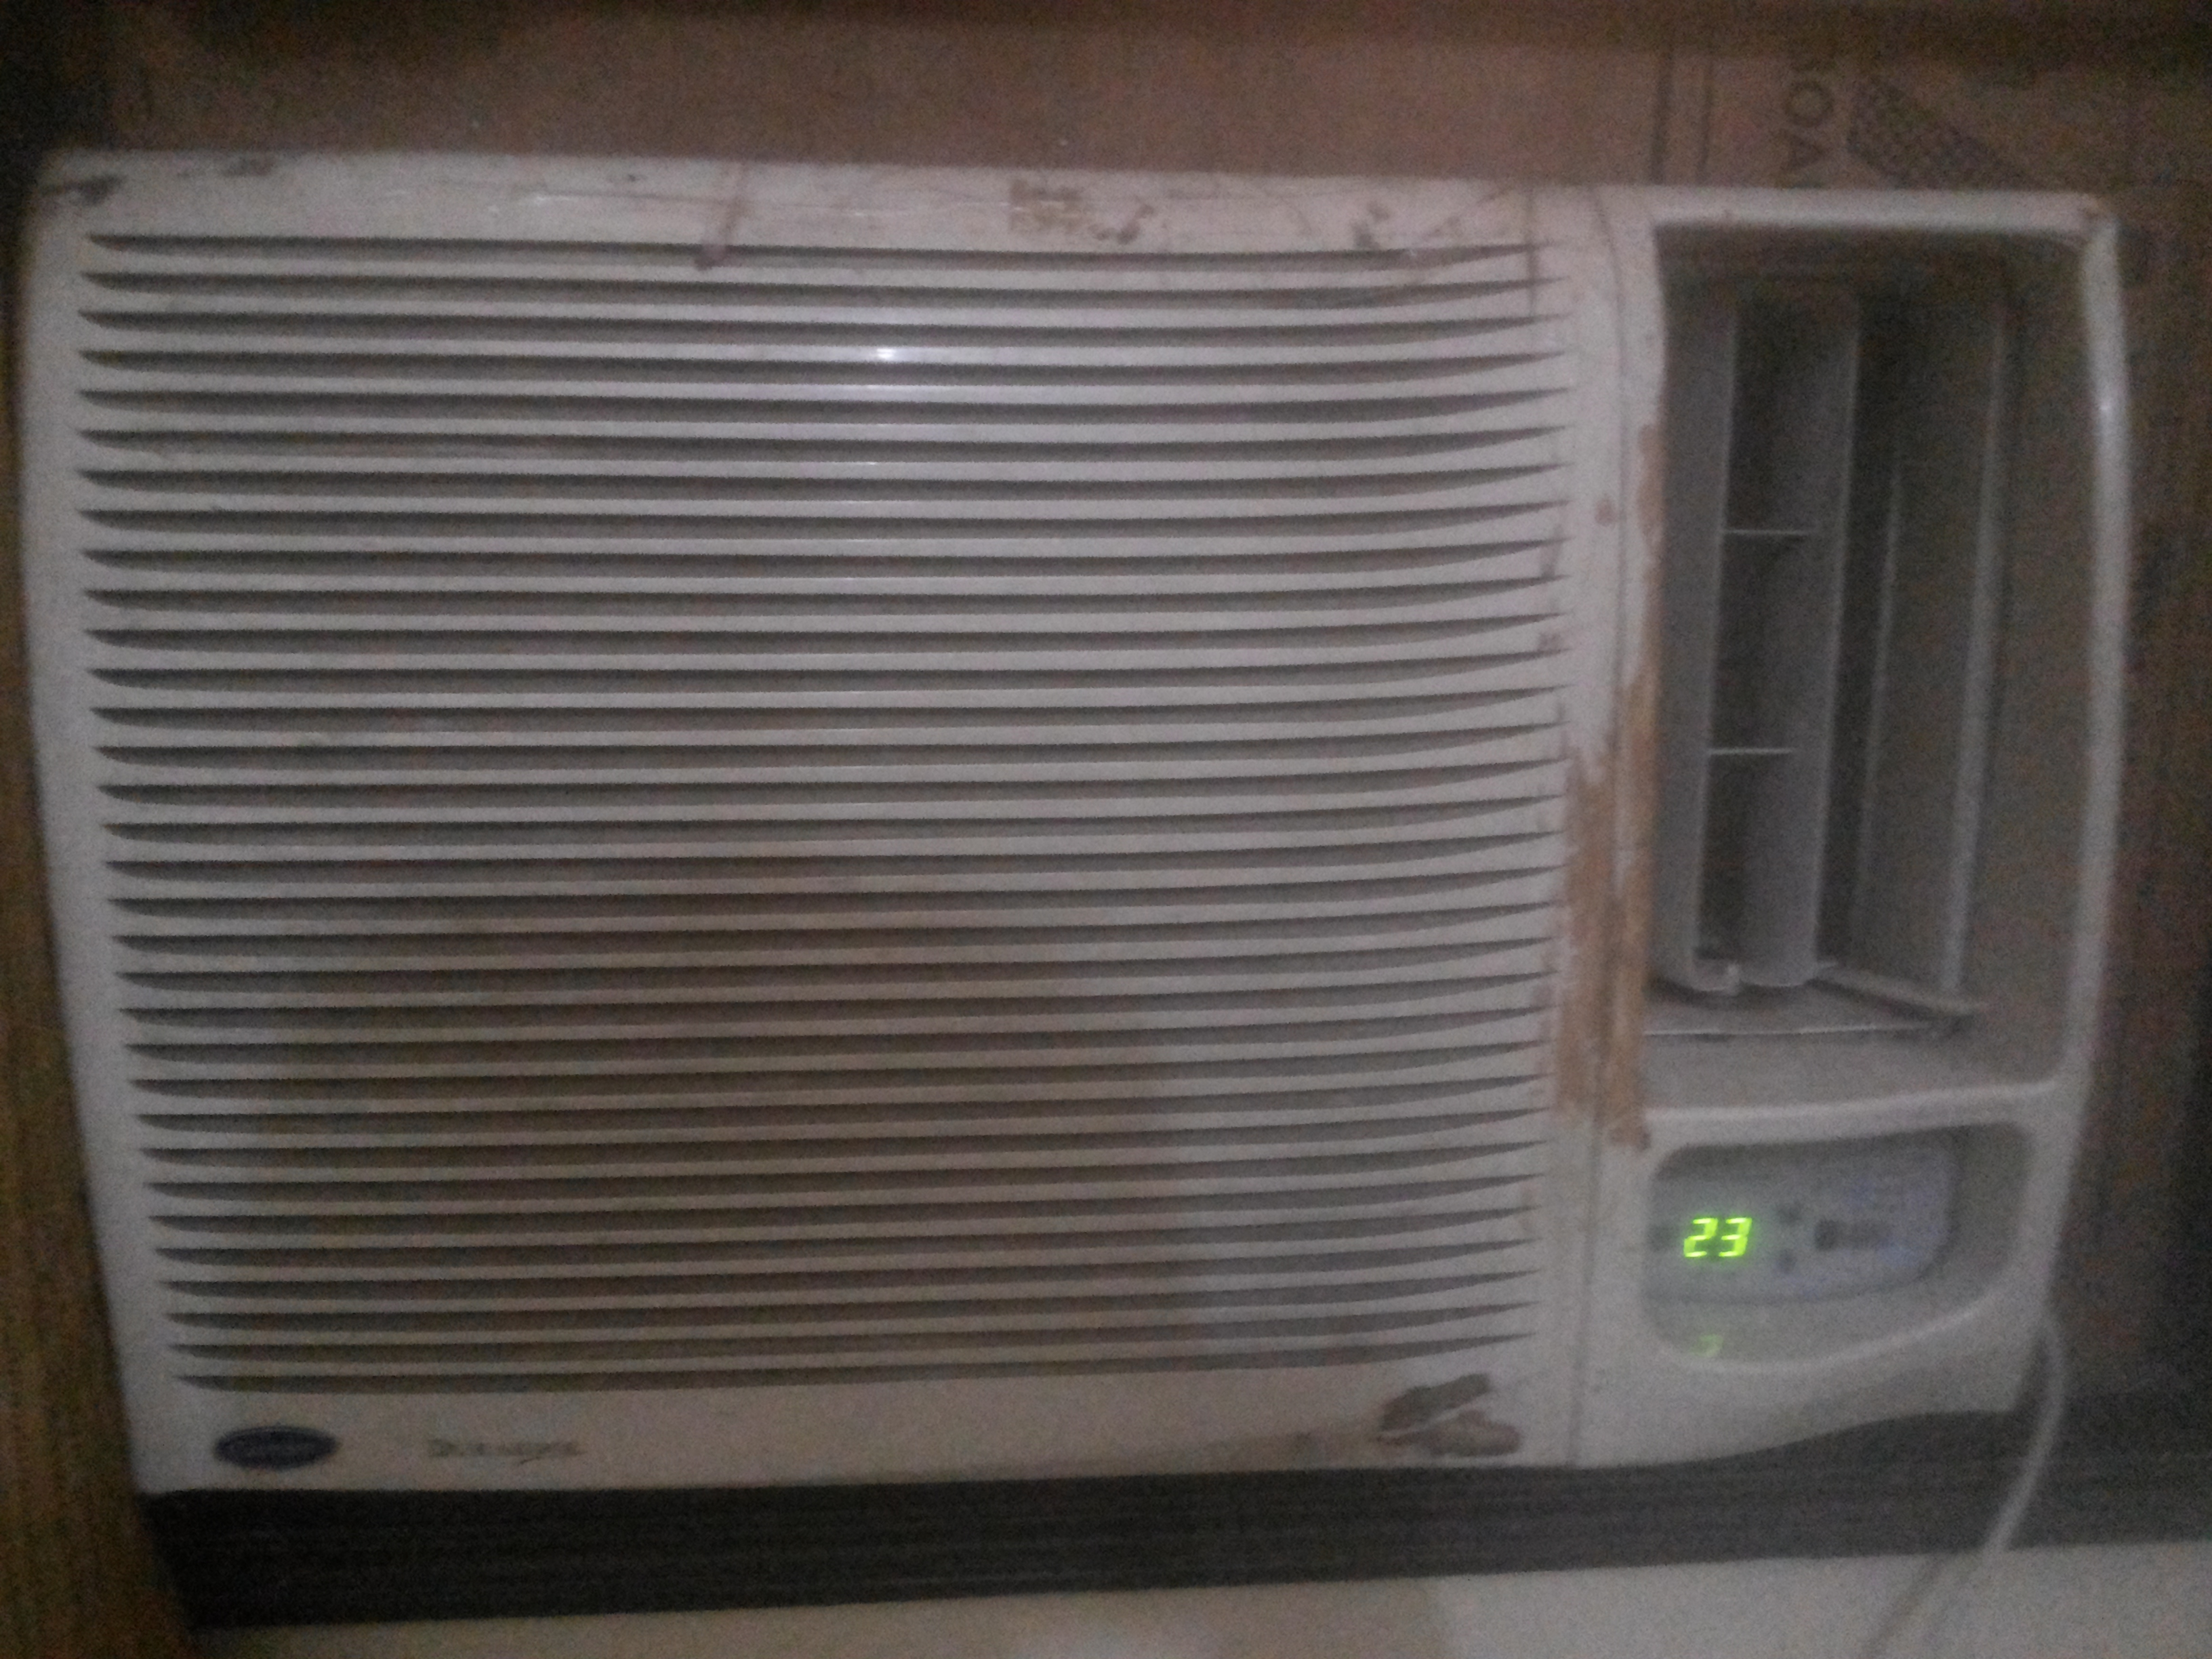 Compressor is not so good carrier durakool plus 1 5 ton for 1 5 window ac